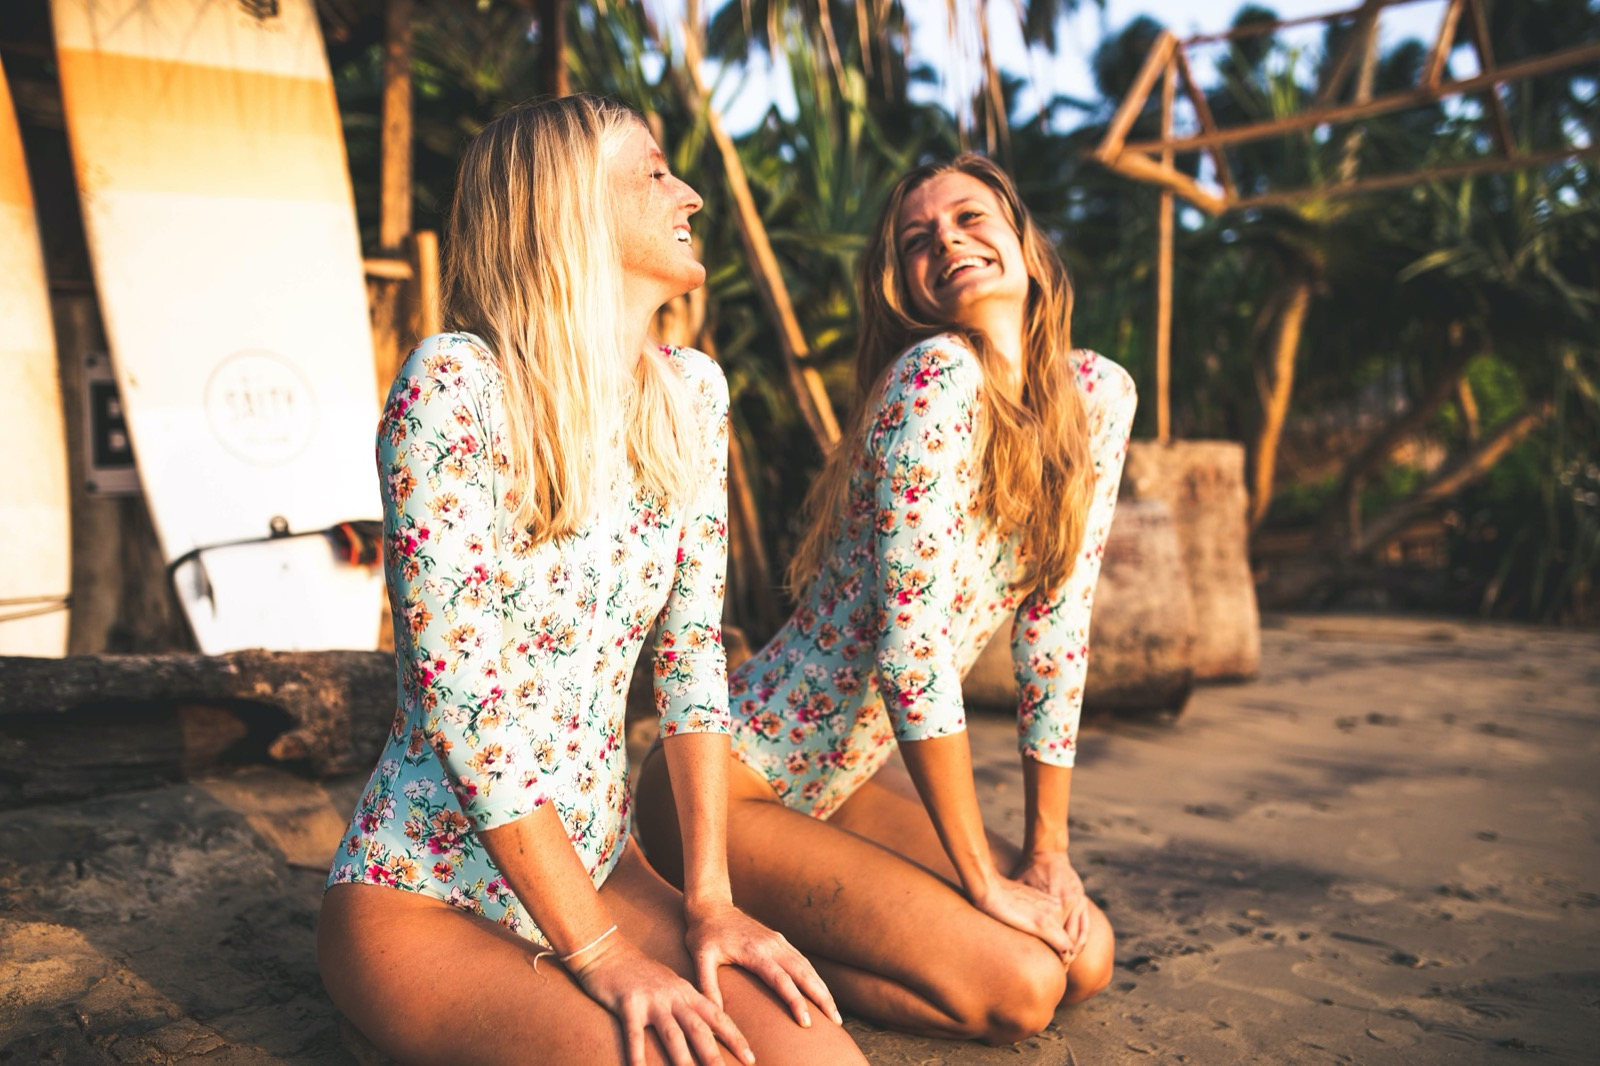 The FLEUR Surf Suit Feminine, Flattering and oh so functional.  Go shred & stay sun safe in this pretty little coverup with UPF 50+ Sun Protection. High leg & full sleeves with a zip up front. Wear alone or with The Lily OR The Fleur bikini tops underneath for more support.